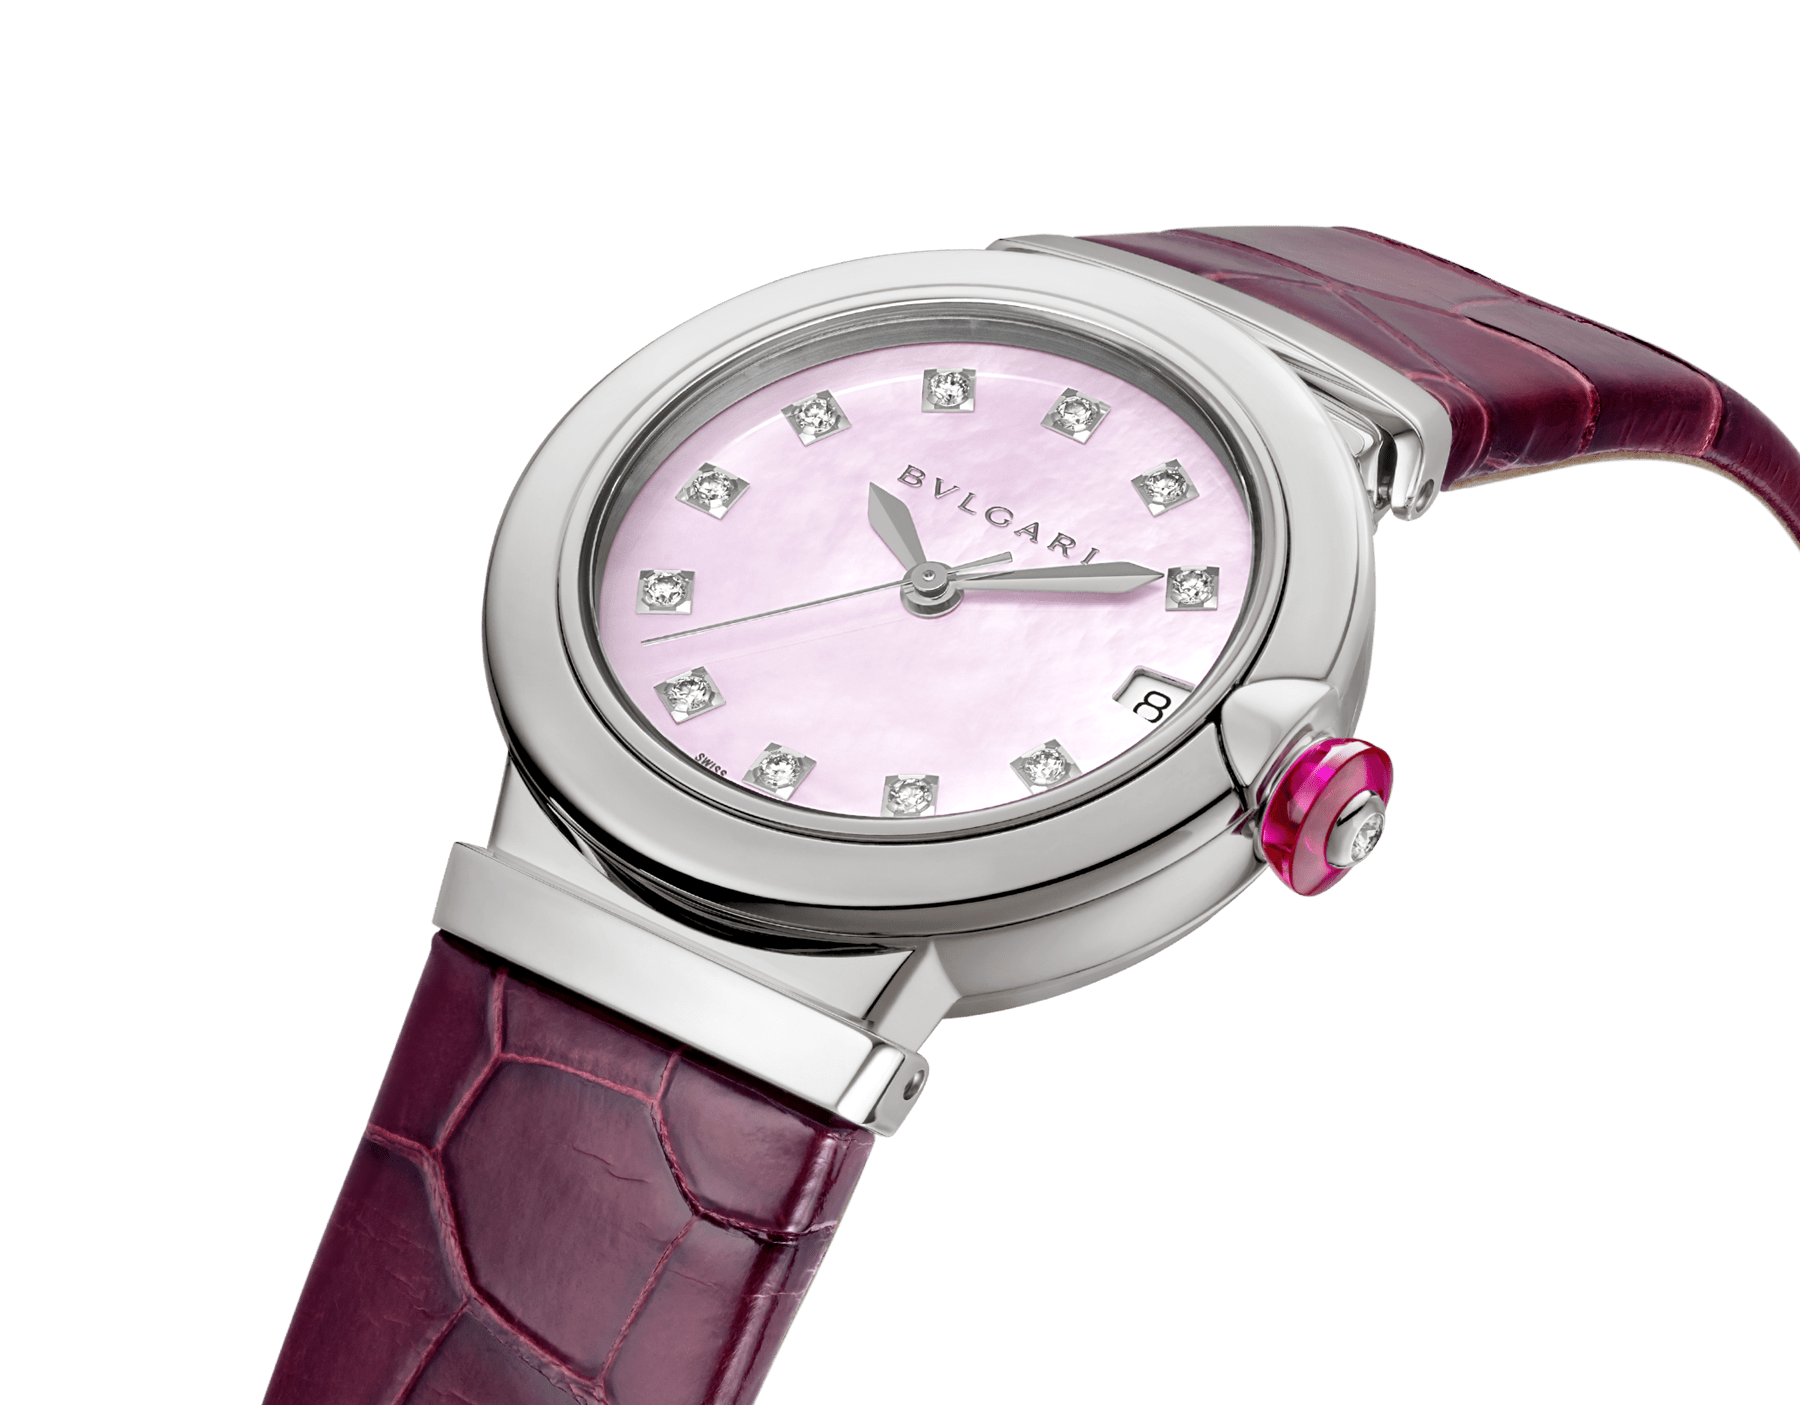 LVCEA watch with stainless steel case, pink mother-of-pearl dial, diamond indexes and burgundy alligator bracelet. 102609 image 3